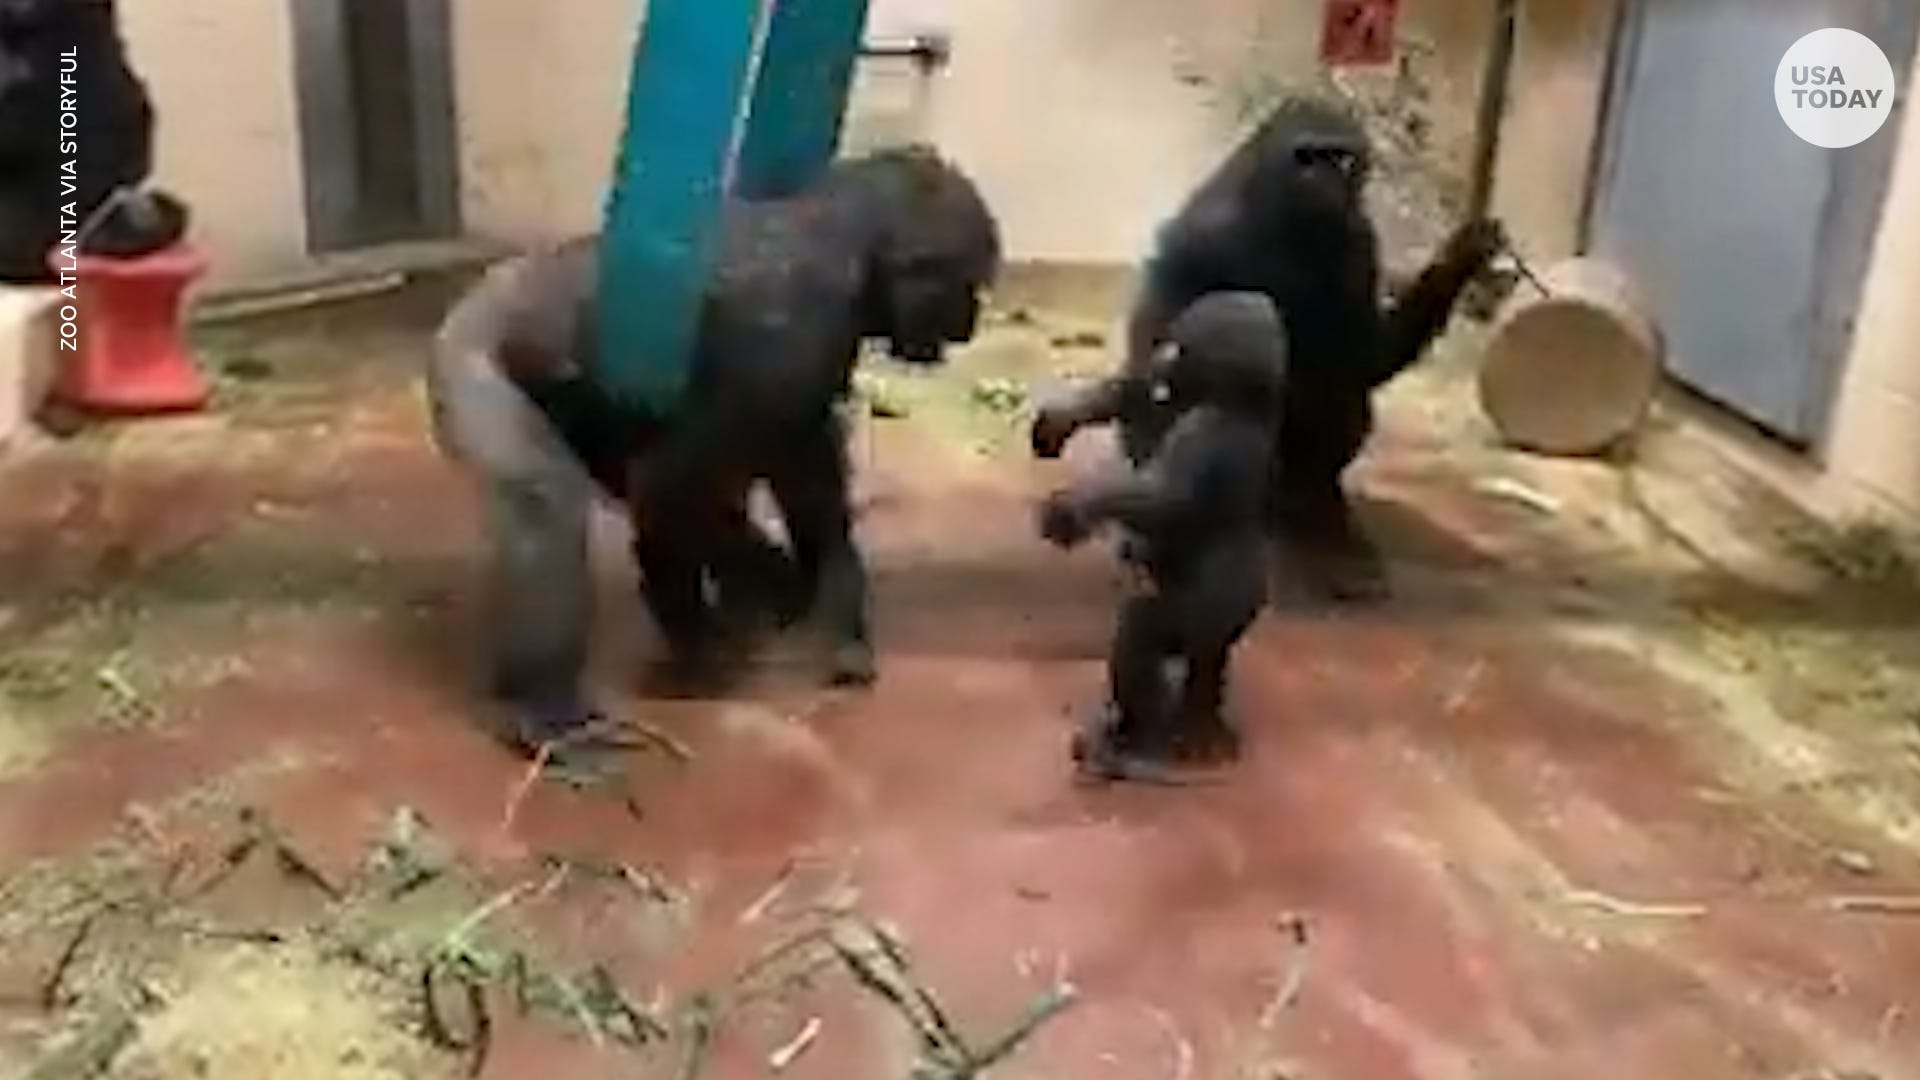 Family of gorillas are having the best time monkeying around during playtime